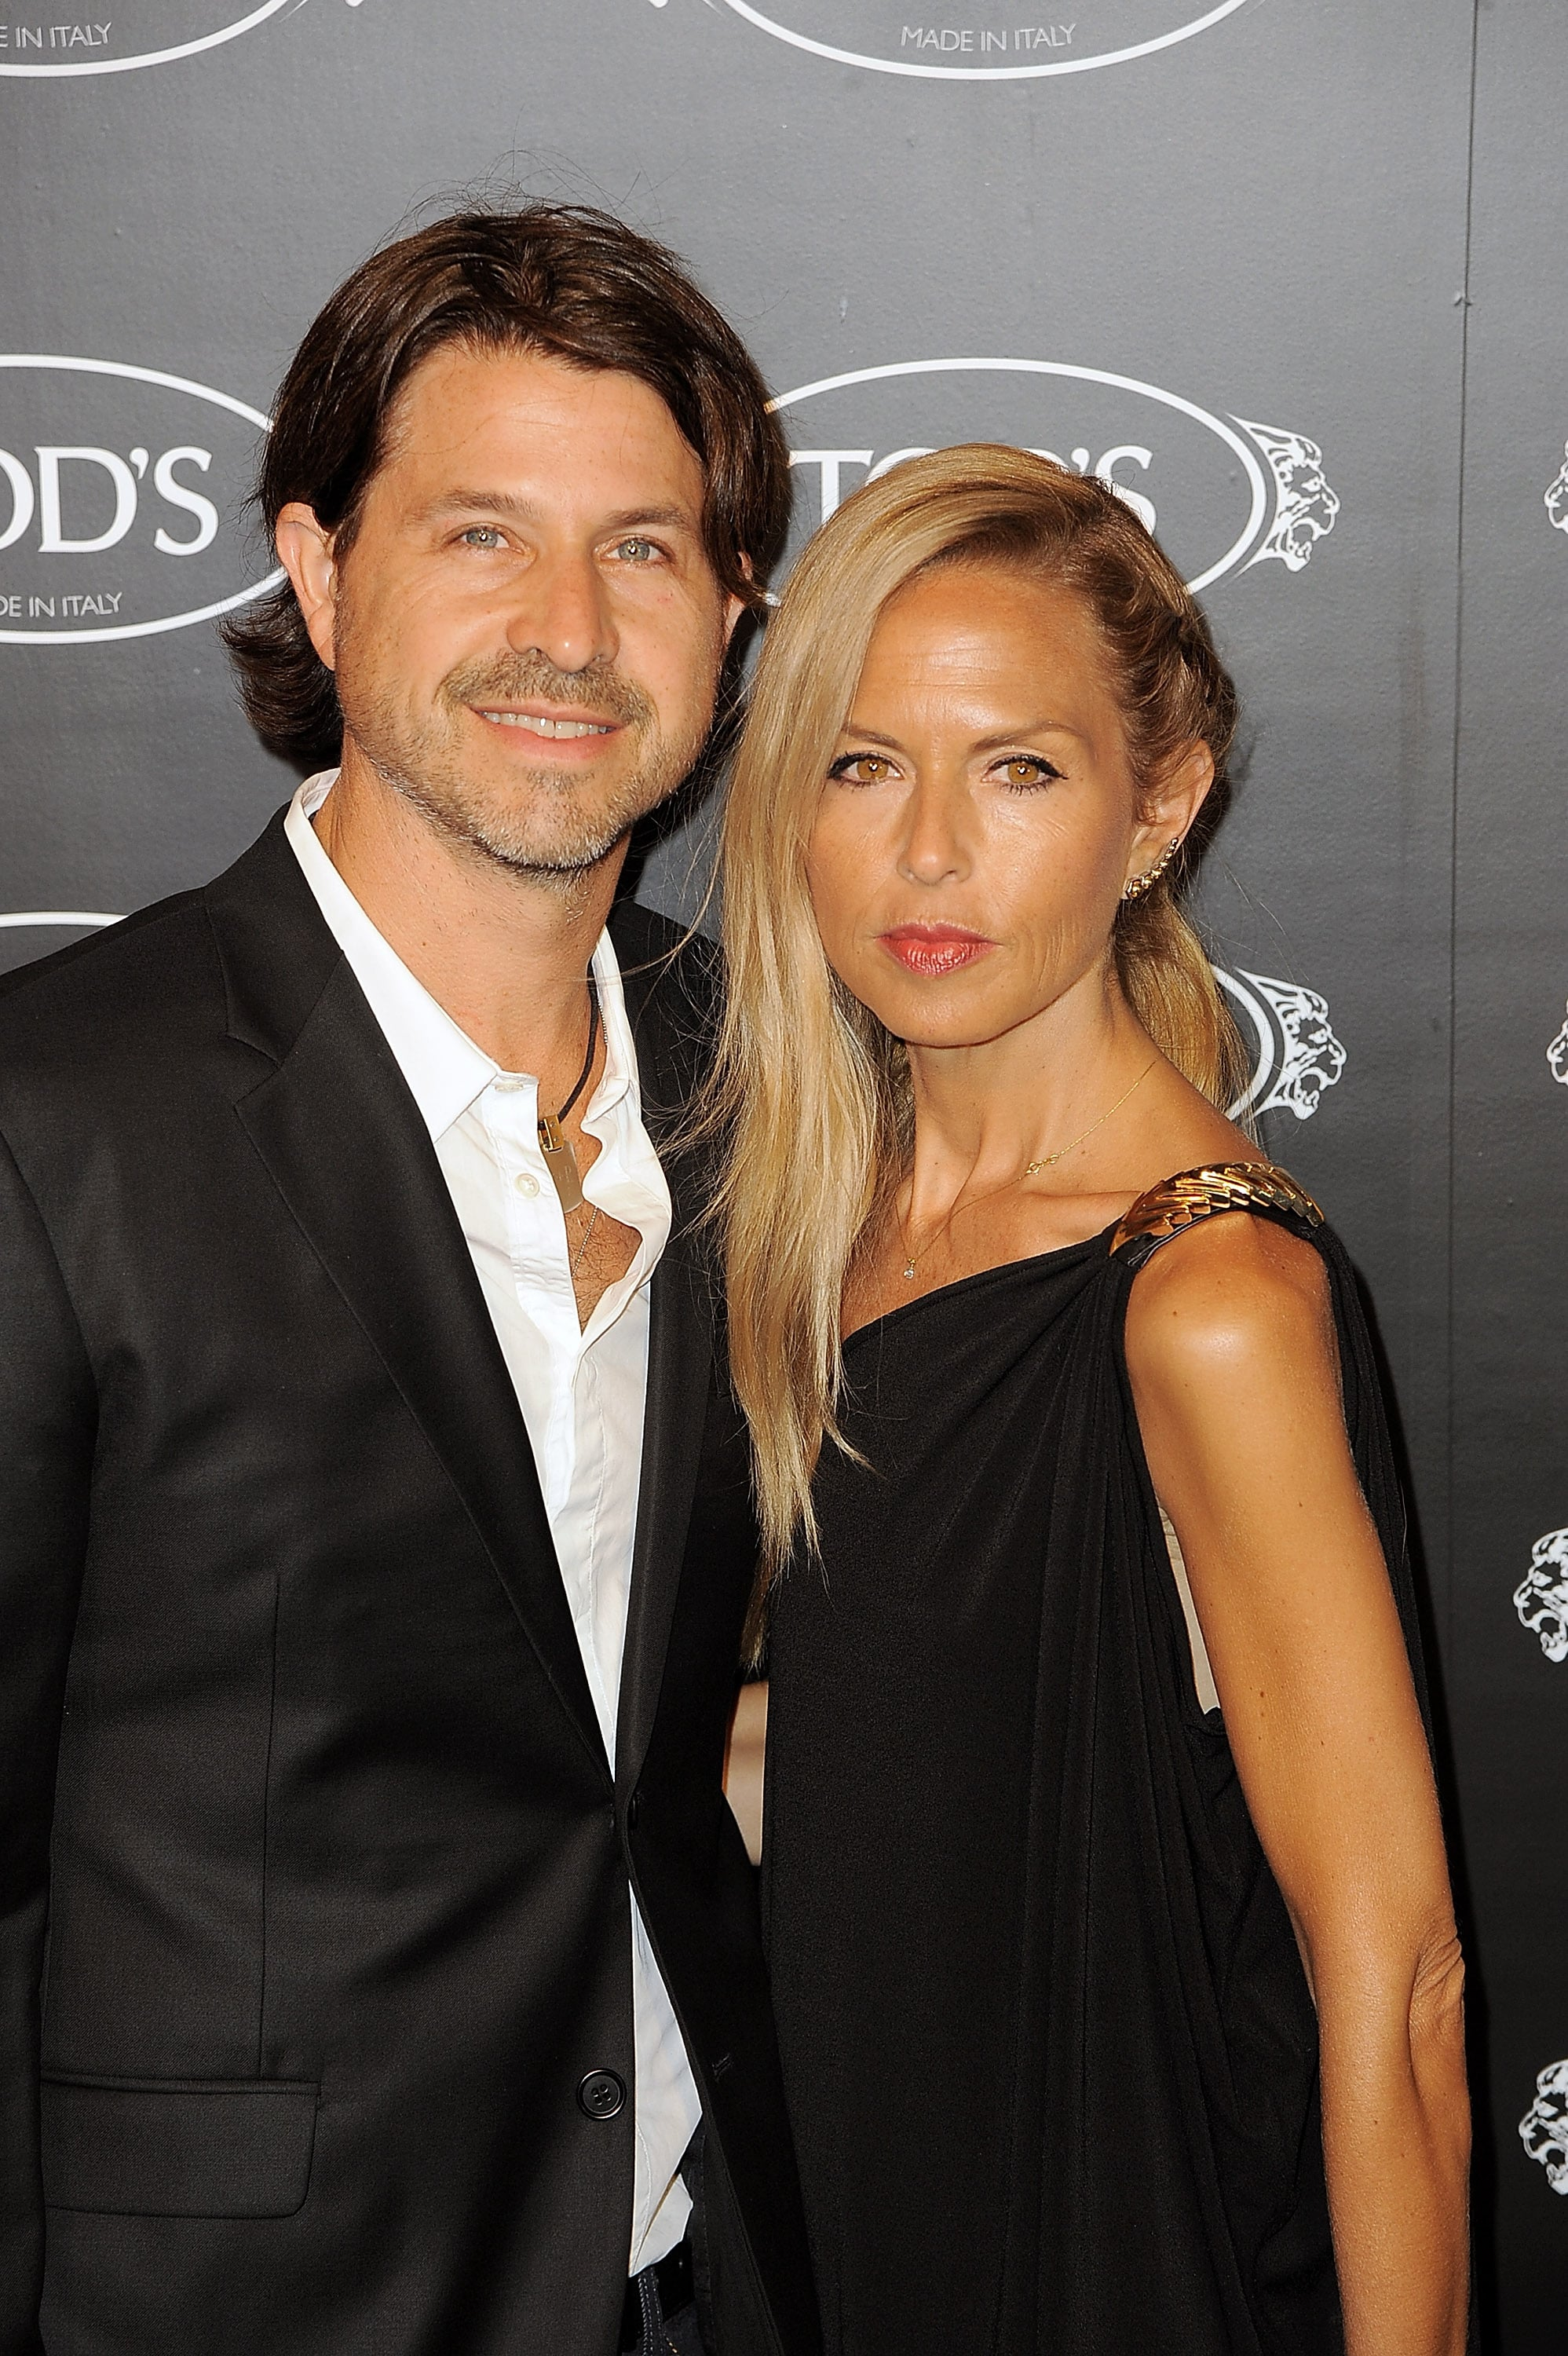 Rachel Zoe with Husband Rodger Berman